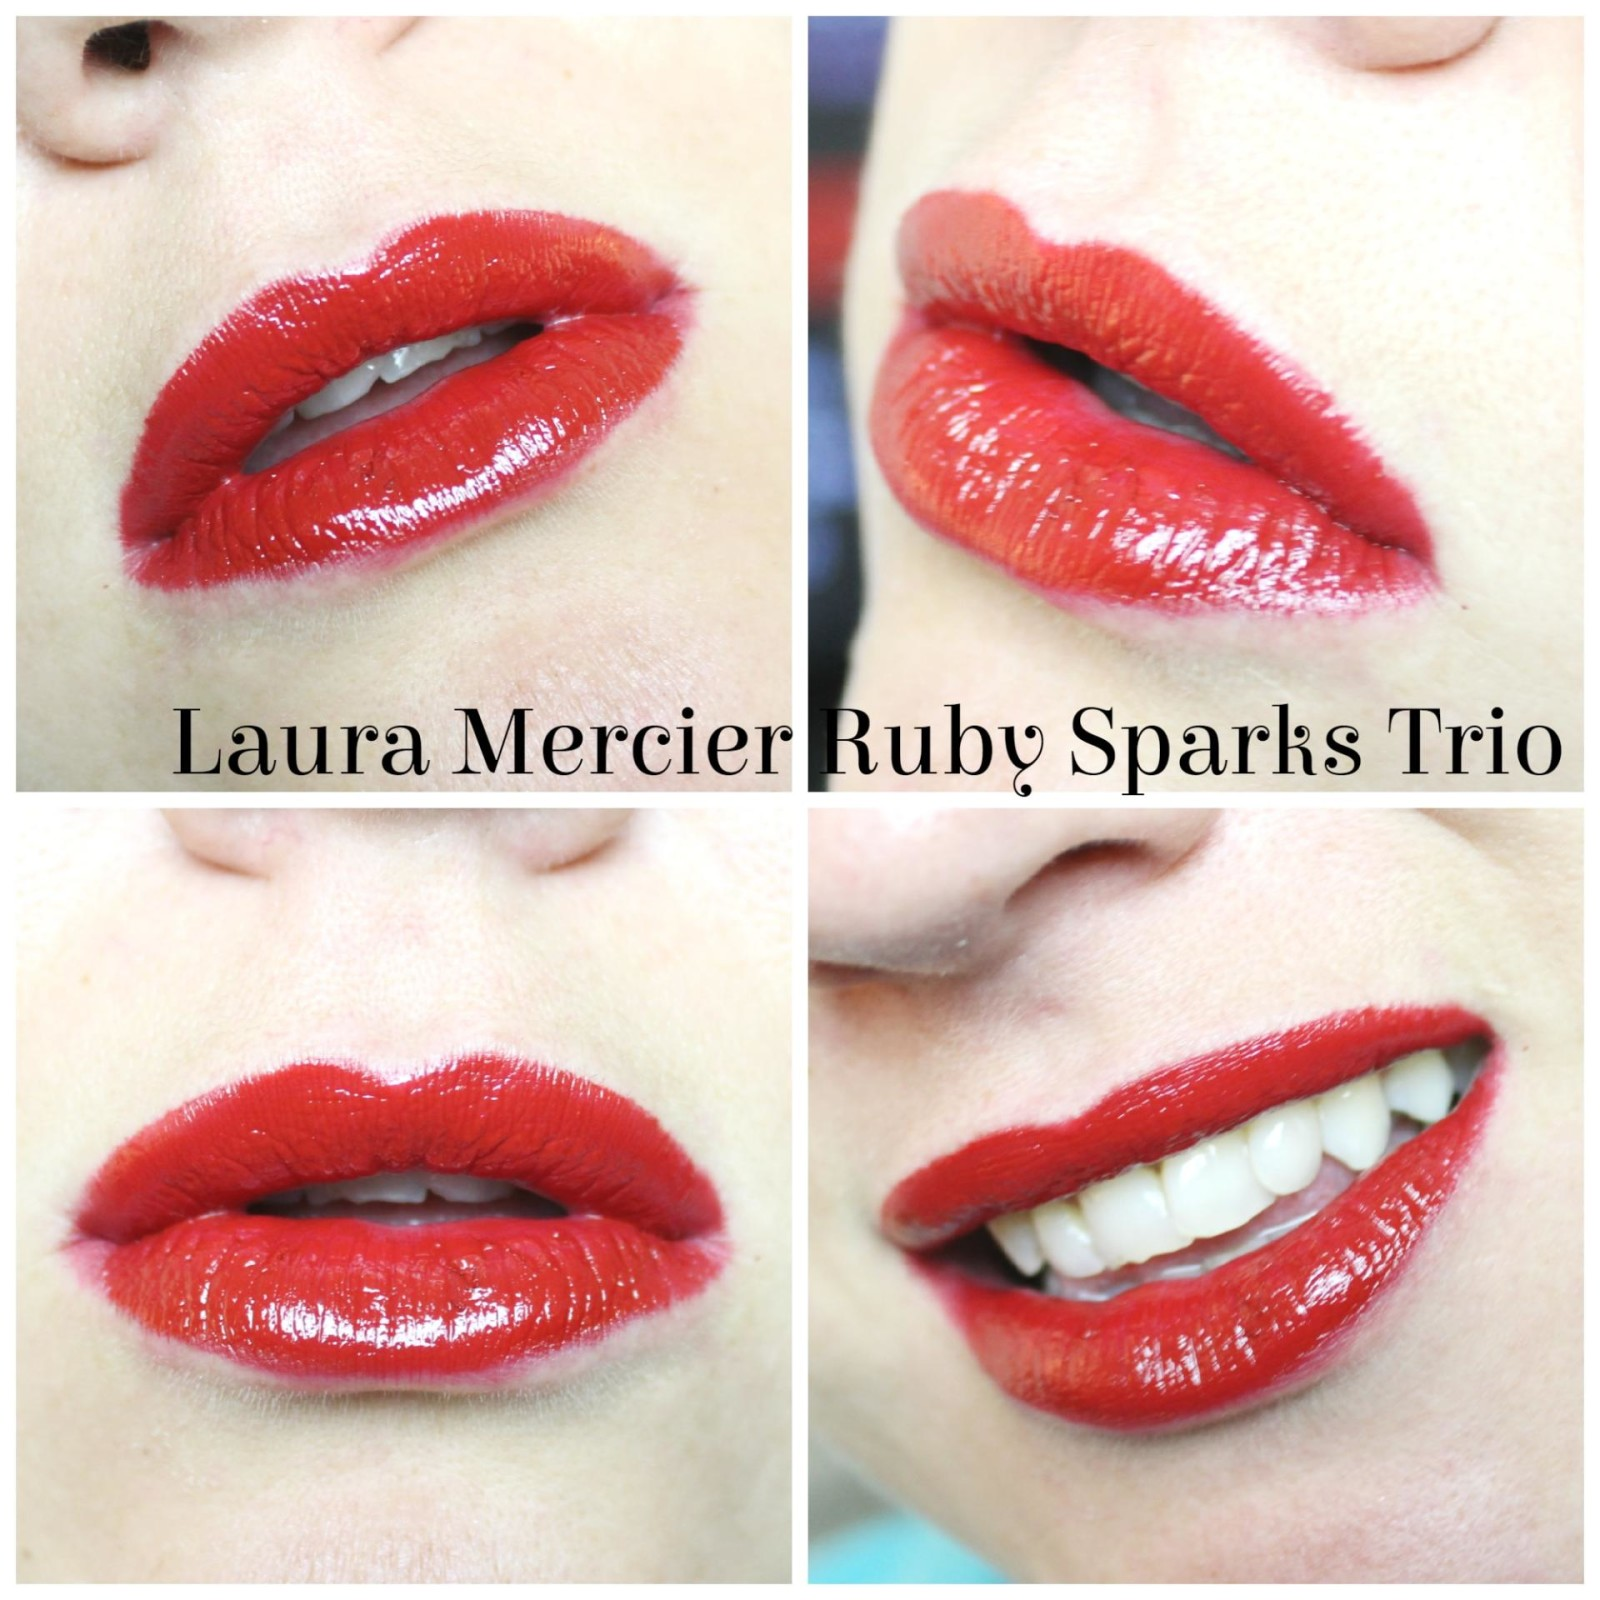 Laura Mercier Lip Trio Ruby Sparks